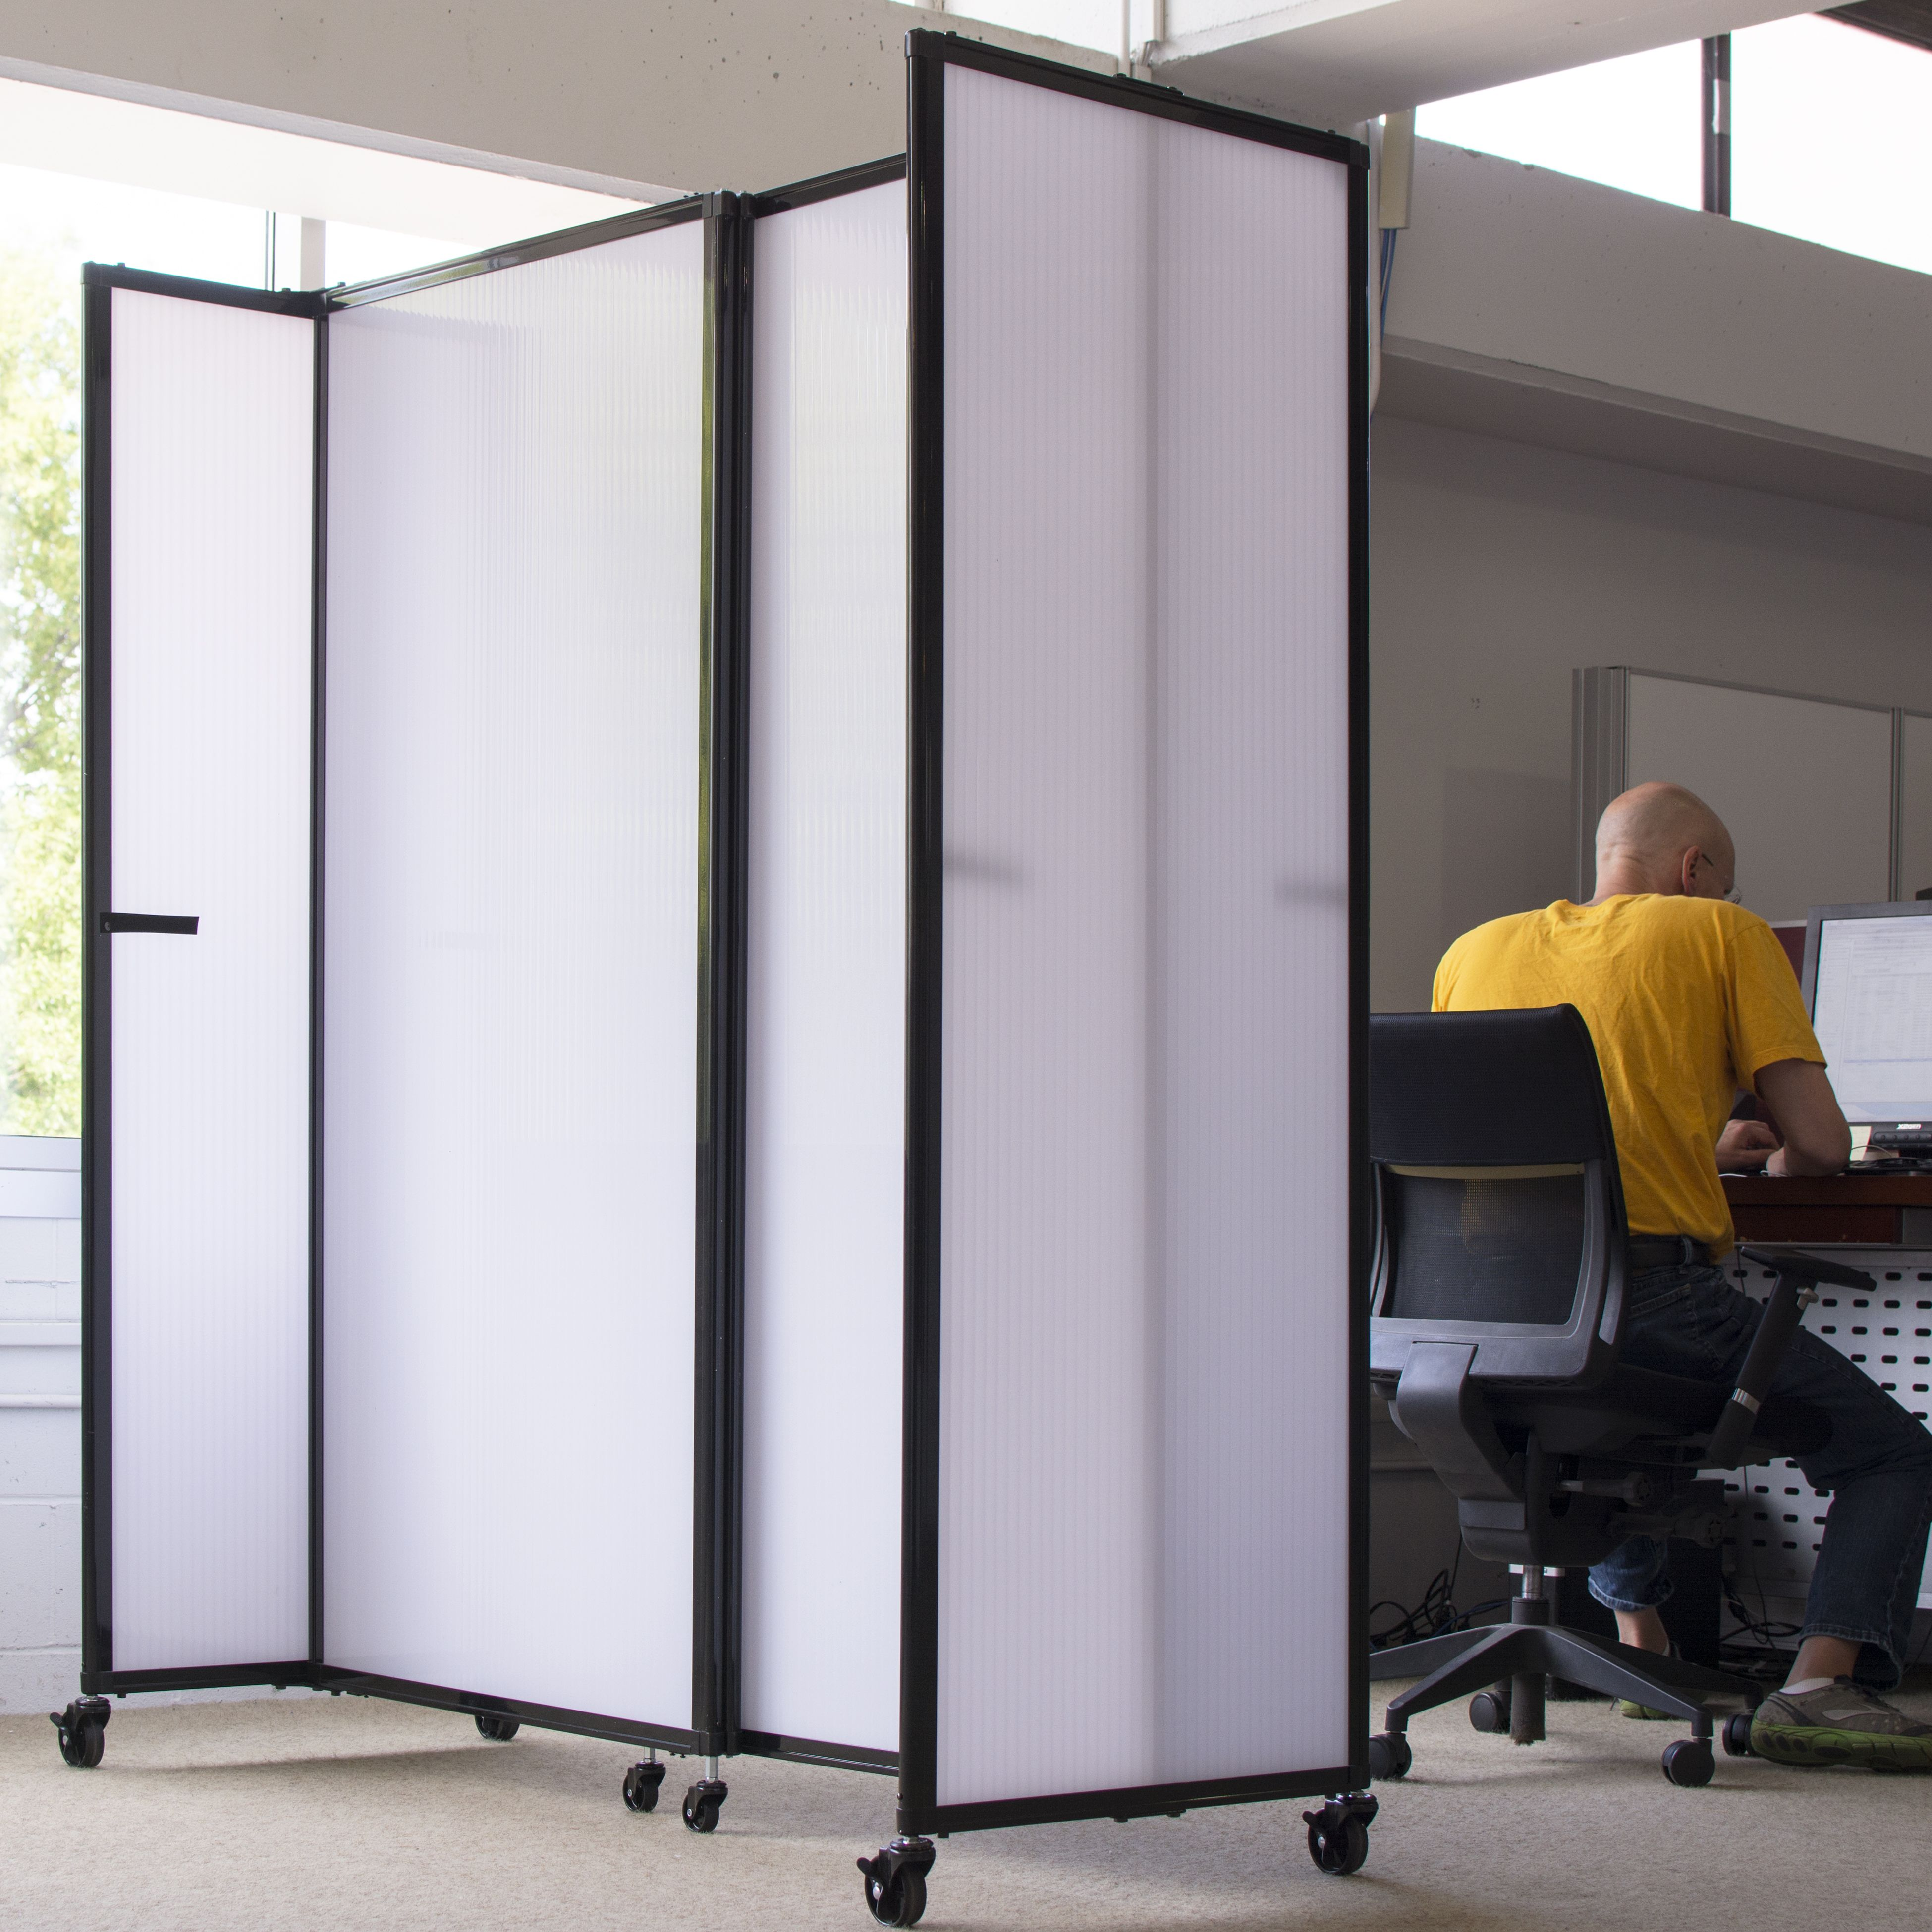 Give Your Employees A Bit Of Privacy In The Office Using Our